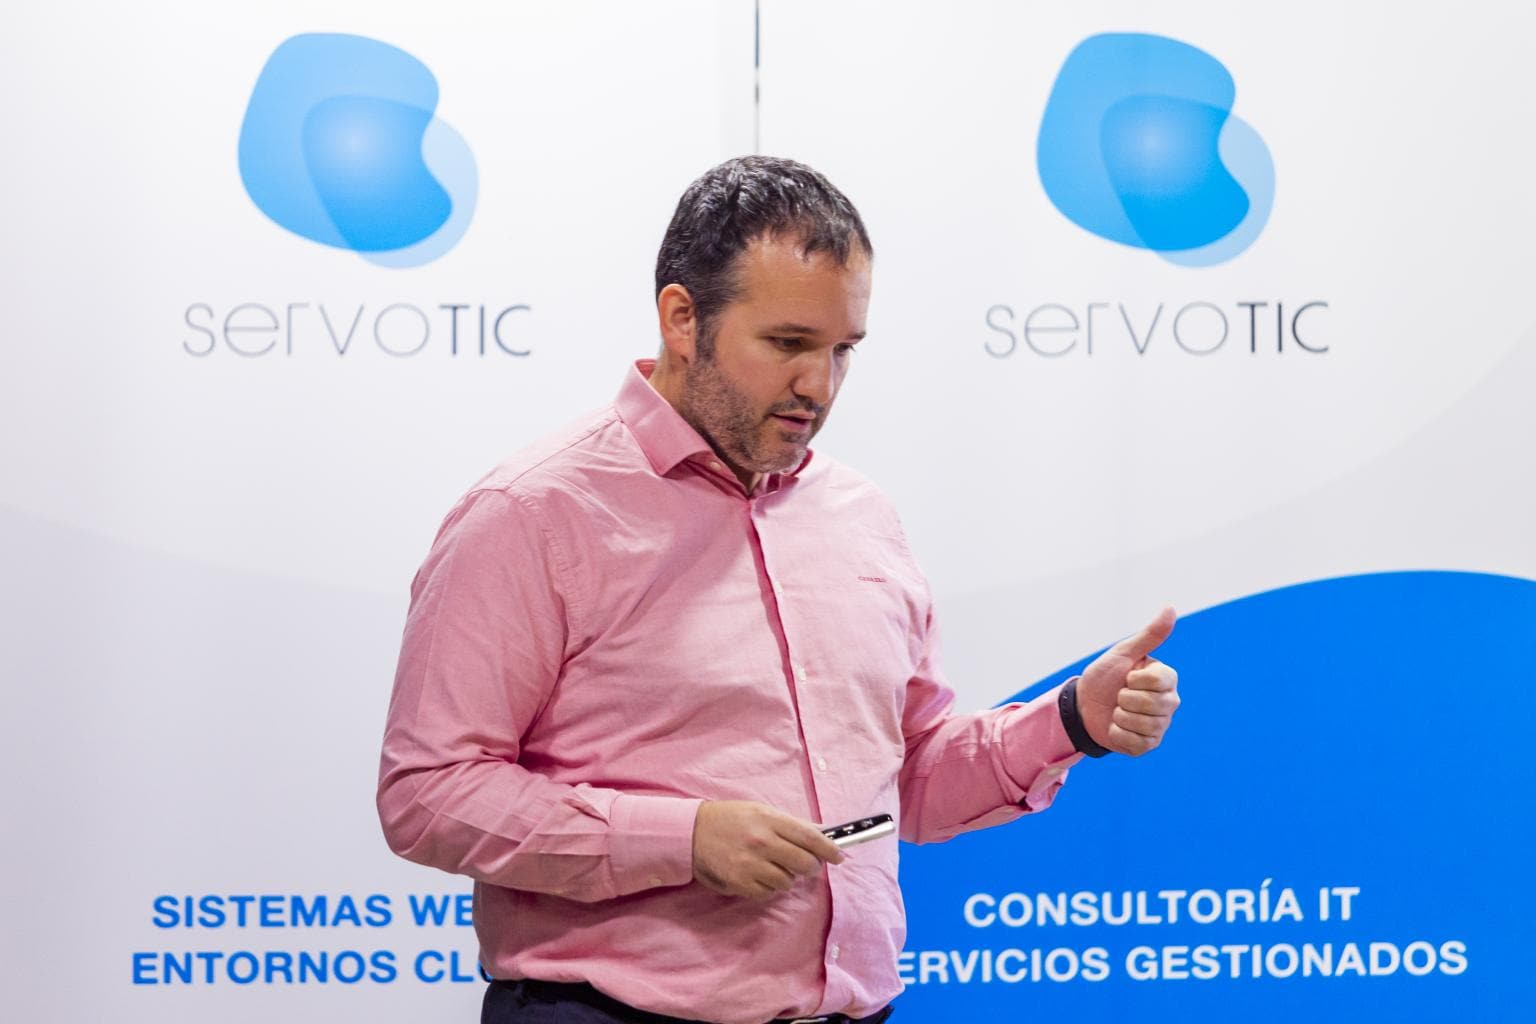 David Carrero from Stackscale at the Servotic tech event in IMPACT HUB